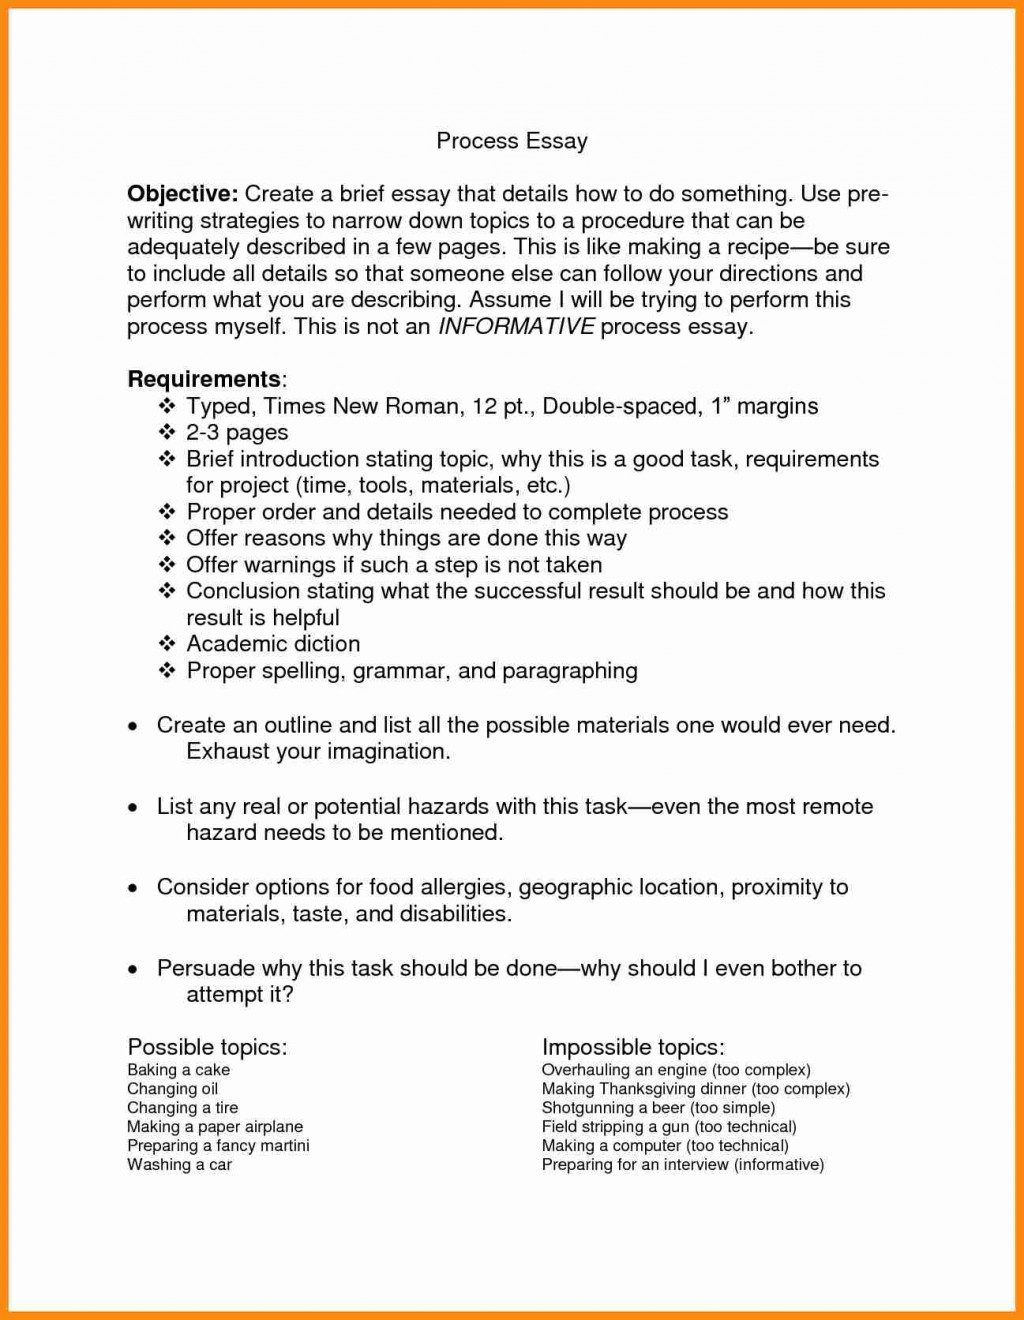 009 Informational Essay Outline Bestolutions Of Example Explanatoryample Career Interview Awesome Collection Process Essaysamples Unforgettable Rubric 4th Grade Informative Explanatory Definition Large